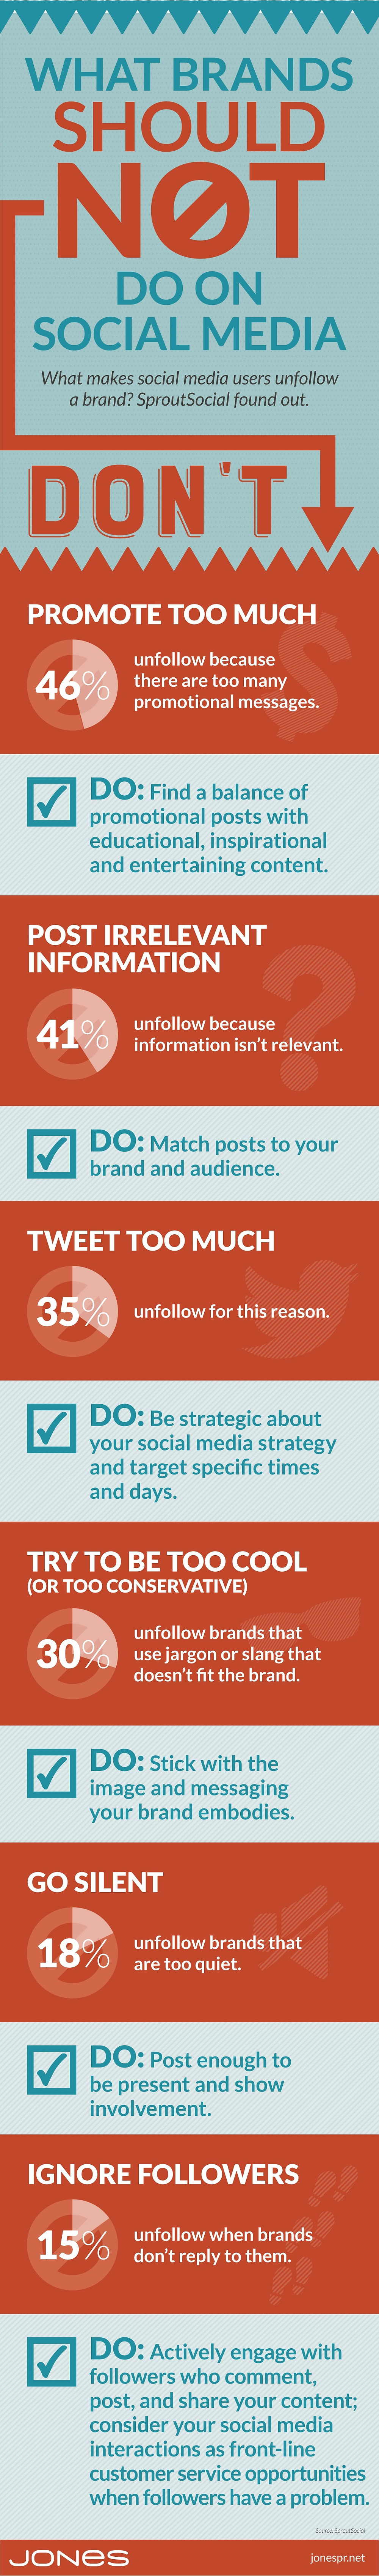 What Brands Should Not Do On Social Media Infographic